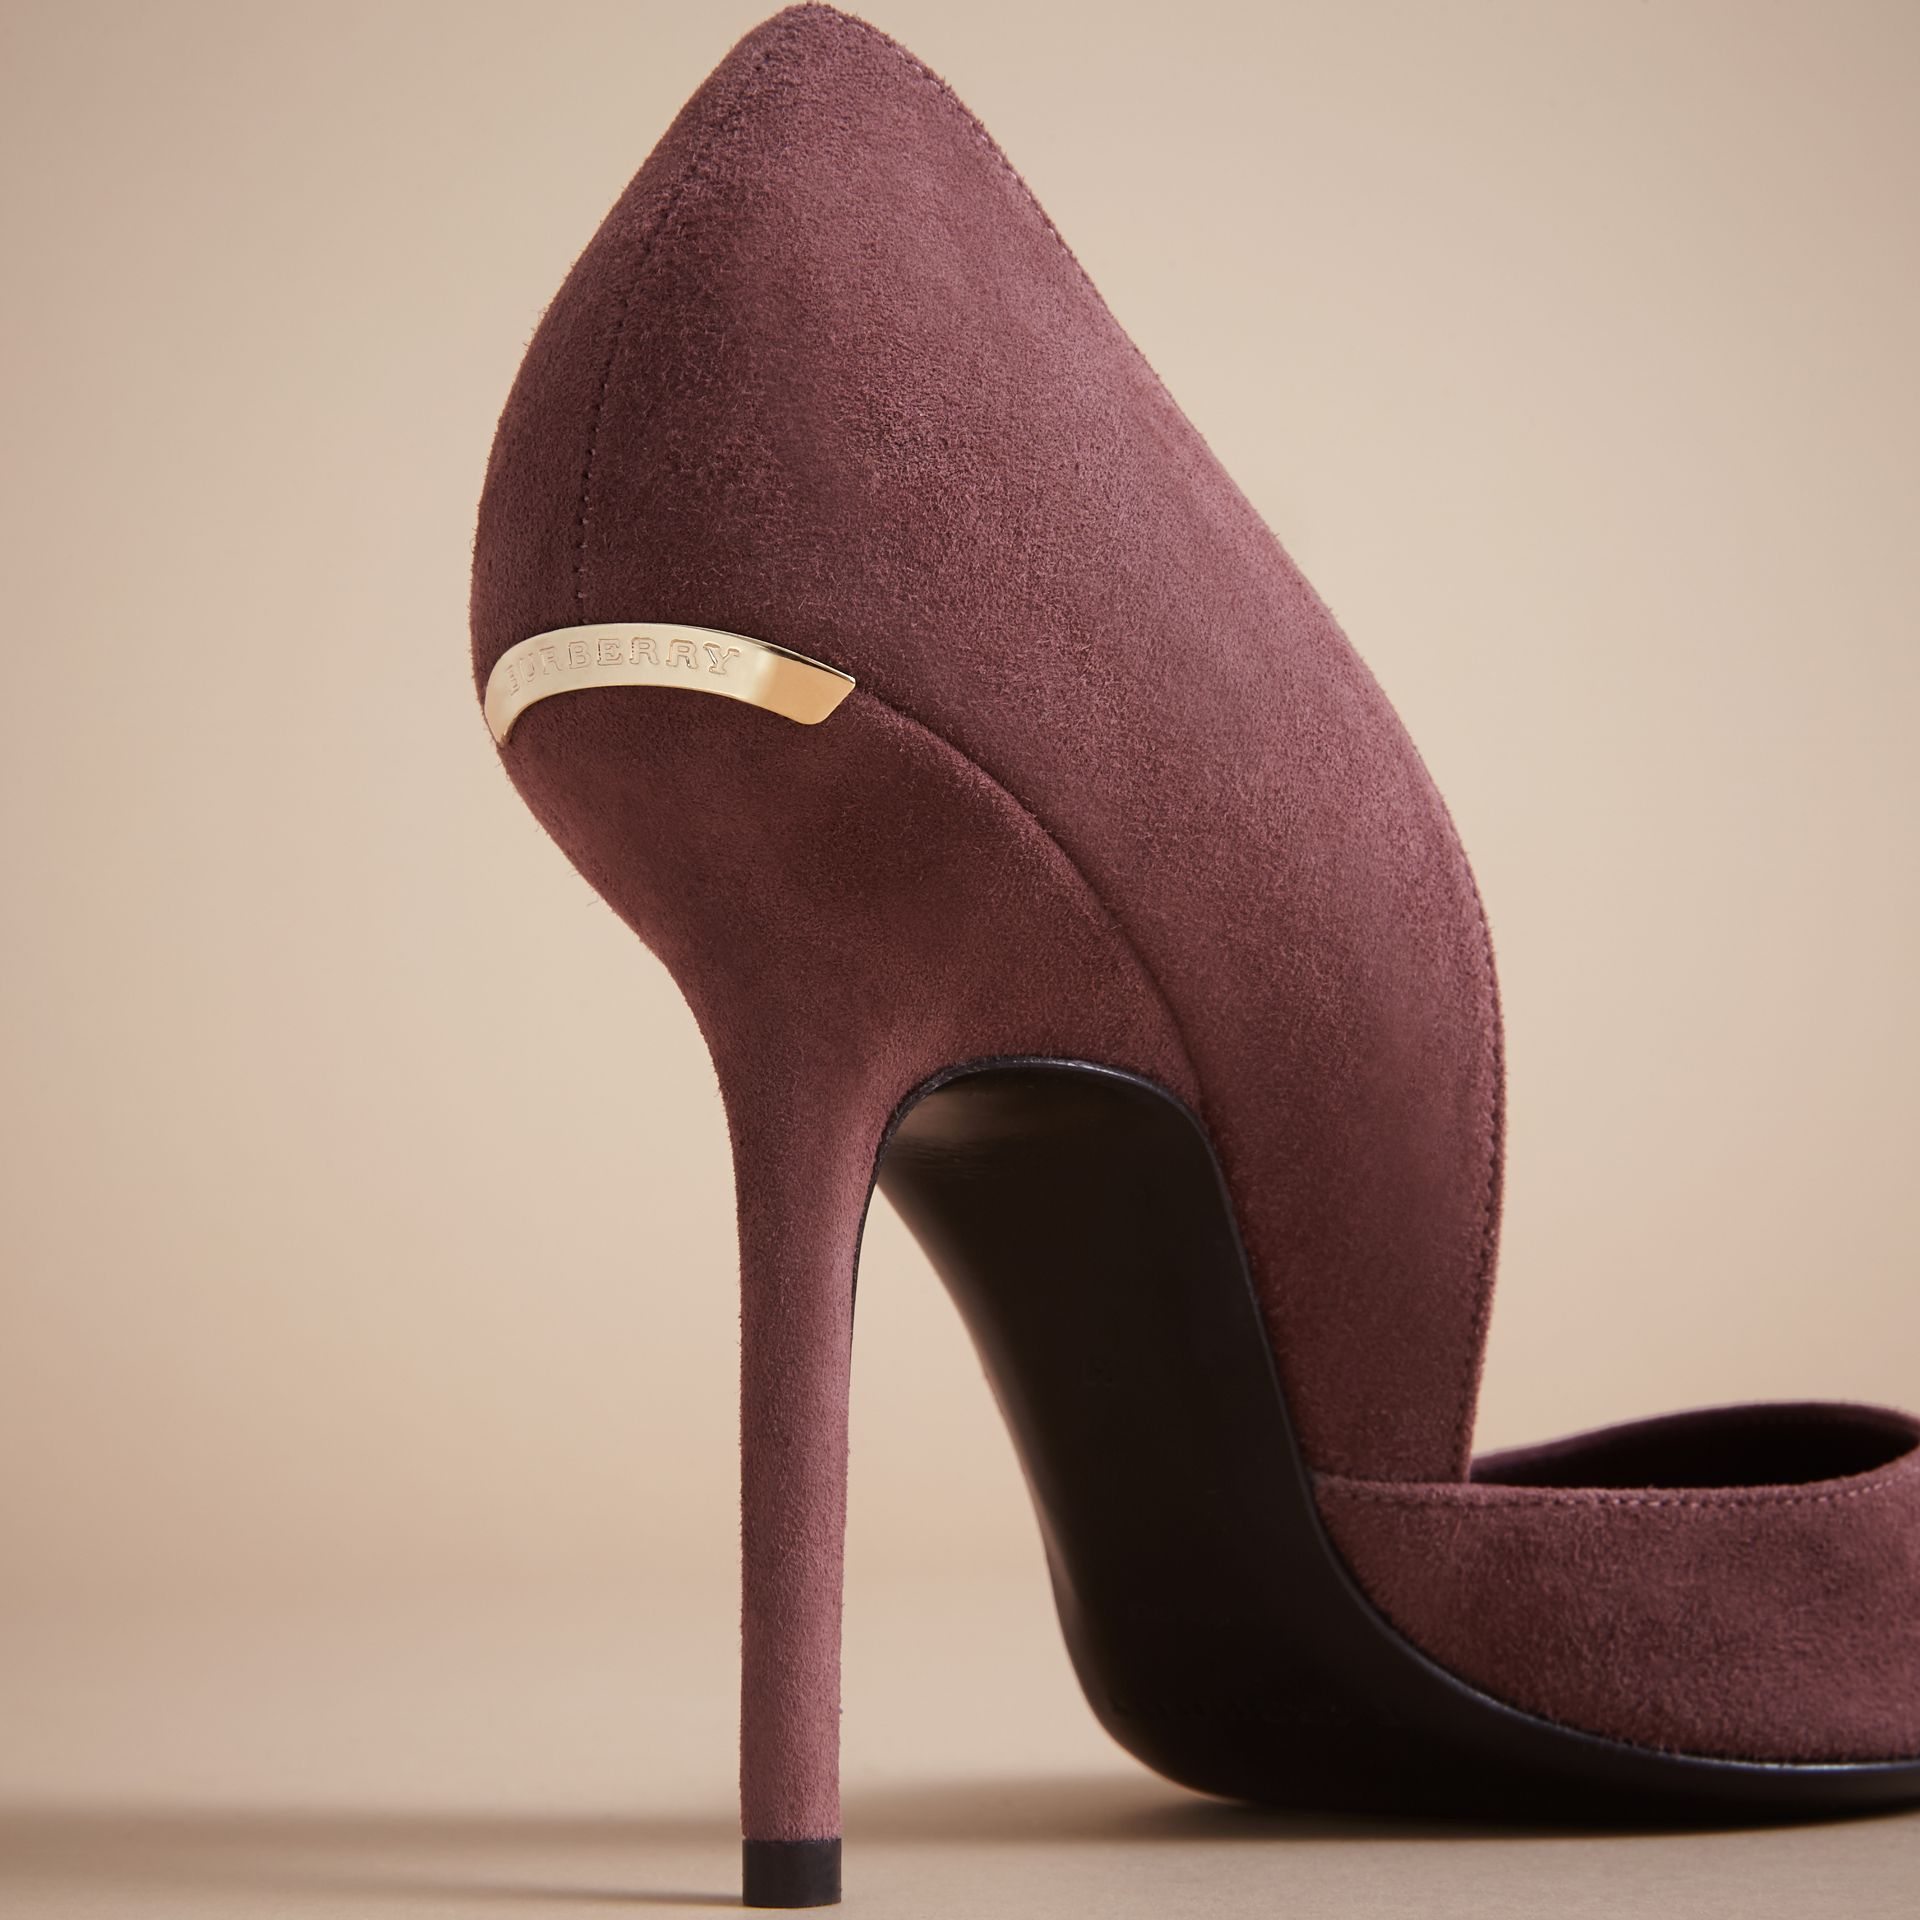 Escarpins d'Orsay à bout pointu en cuir velours (Rose Taupe) - Femme | Burberry - photo de la galerie 2